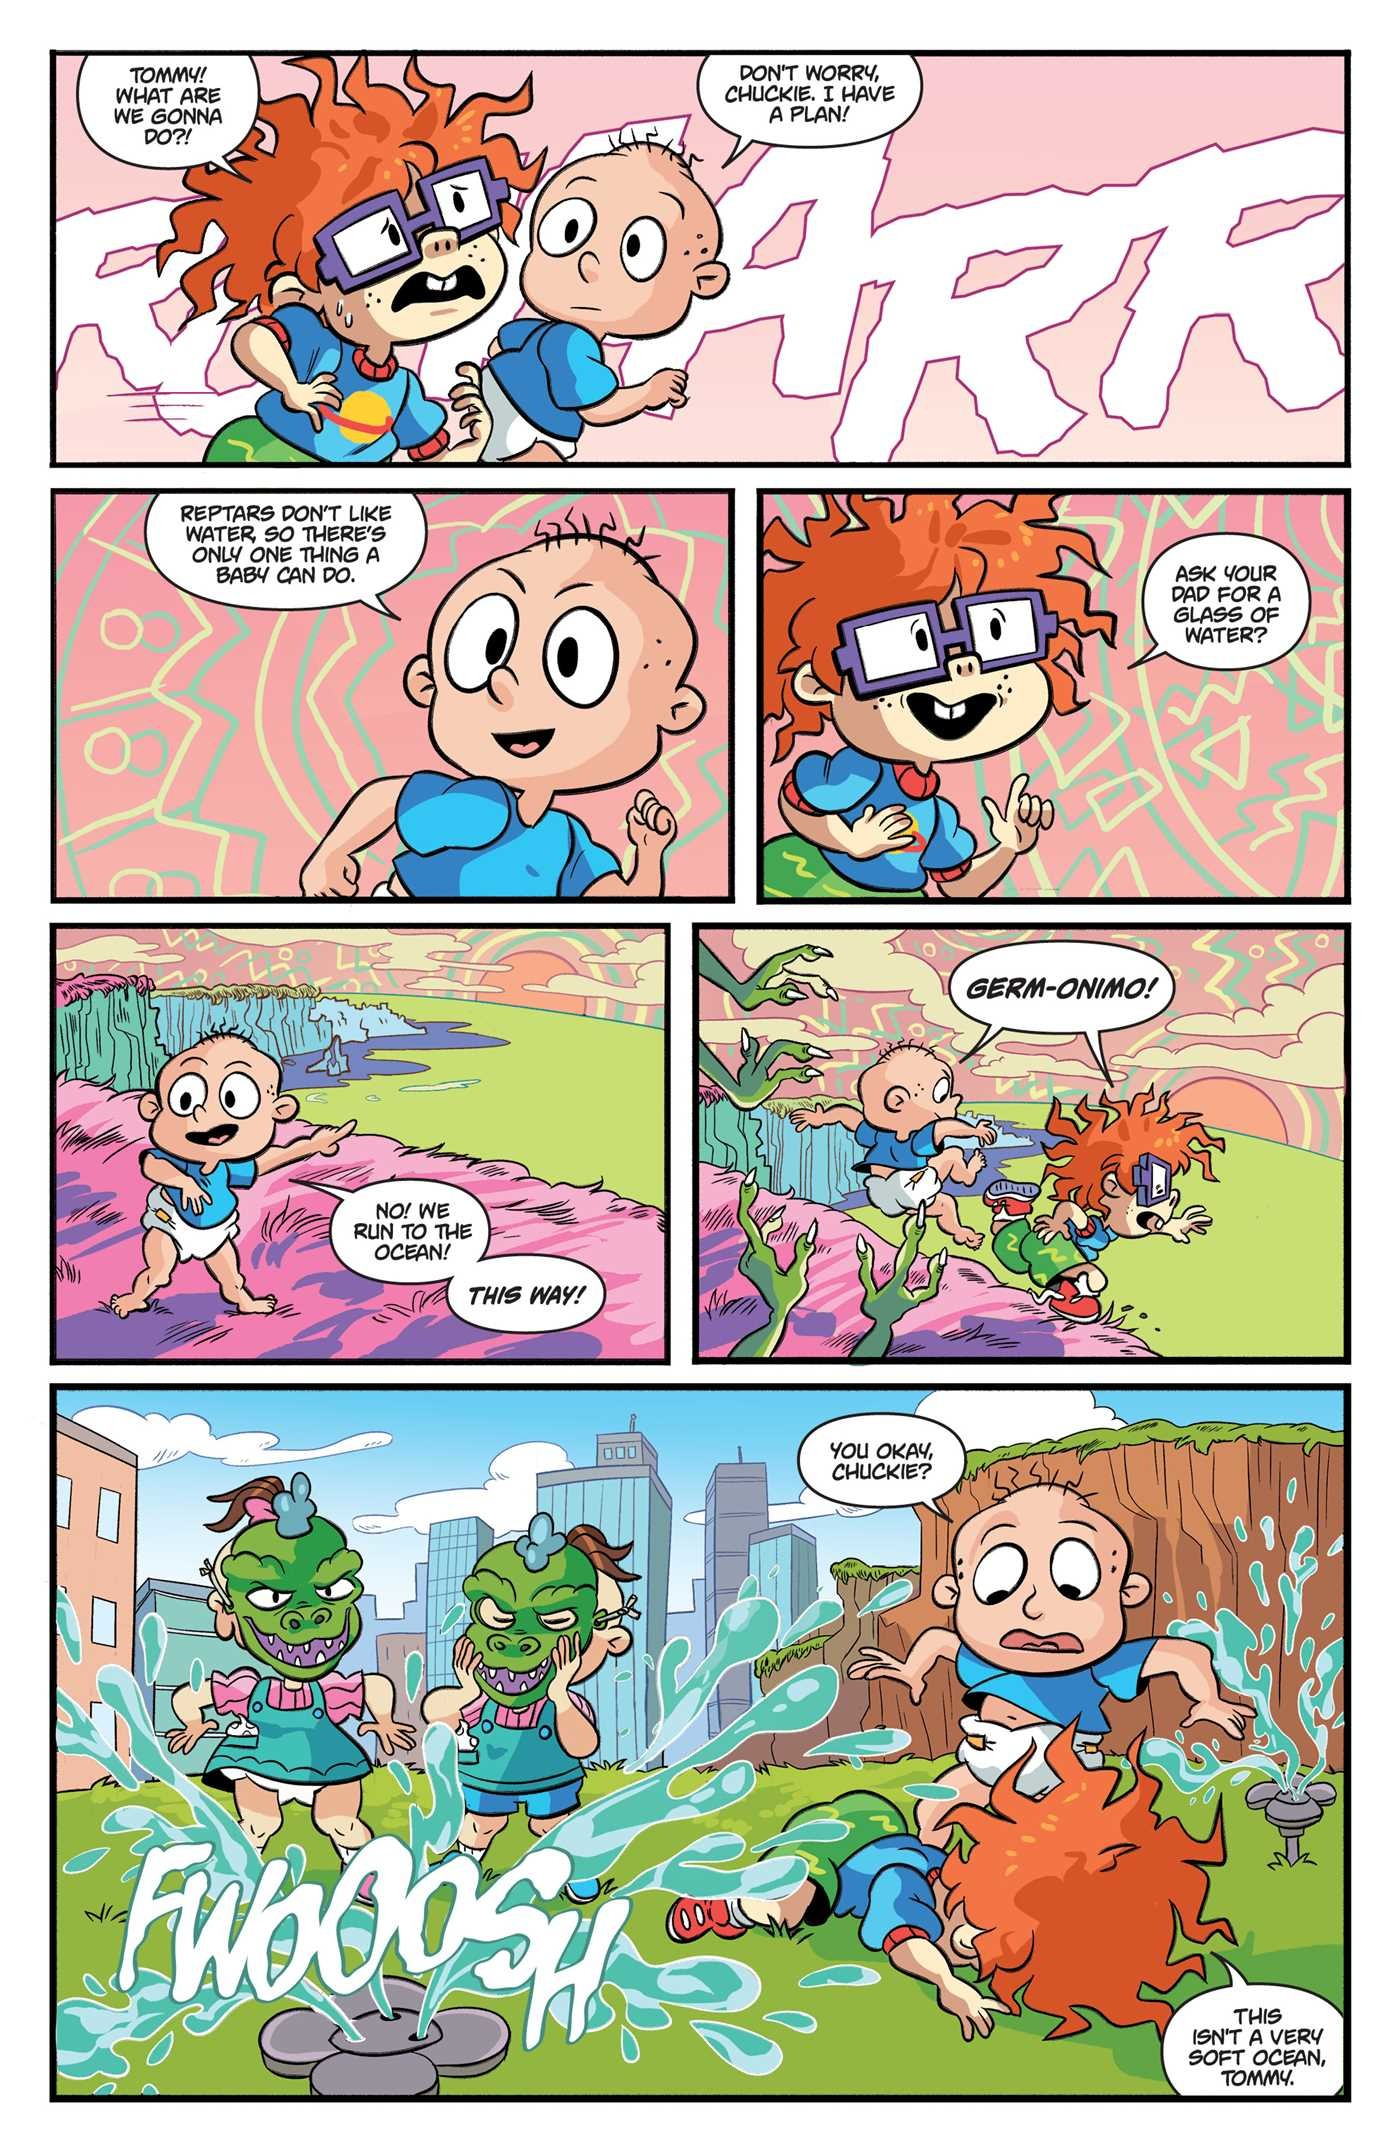 Rugrats vol 1 9781684151769.in02